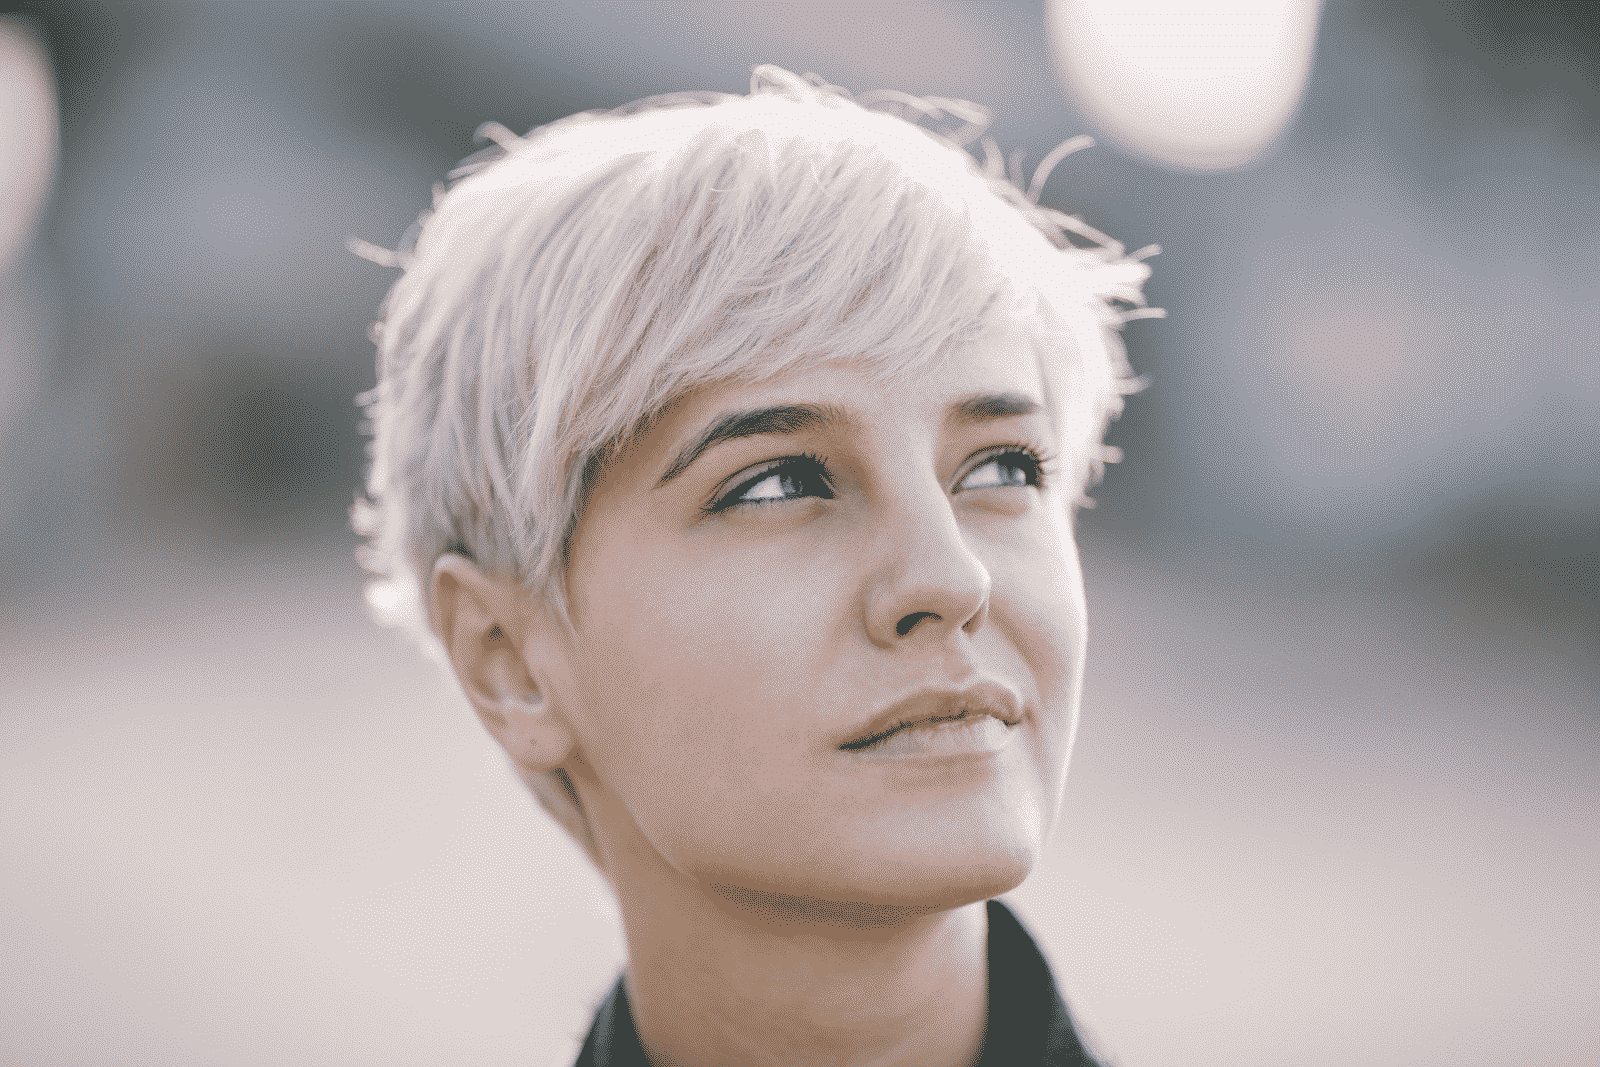 woman with pastel pixie cut looking to the side